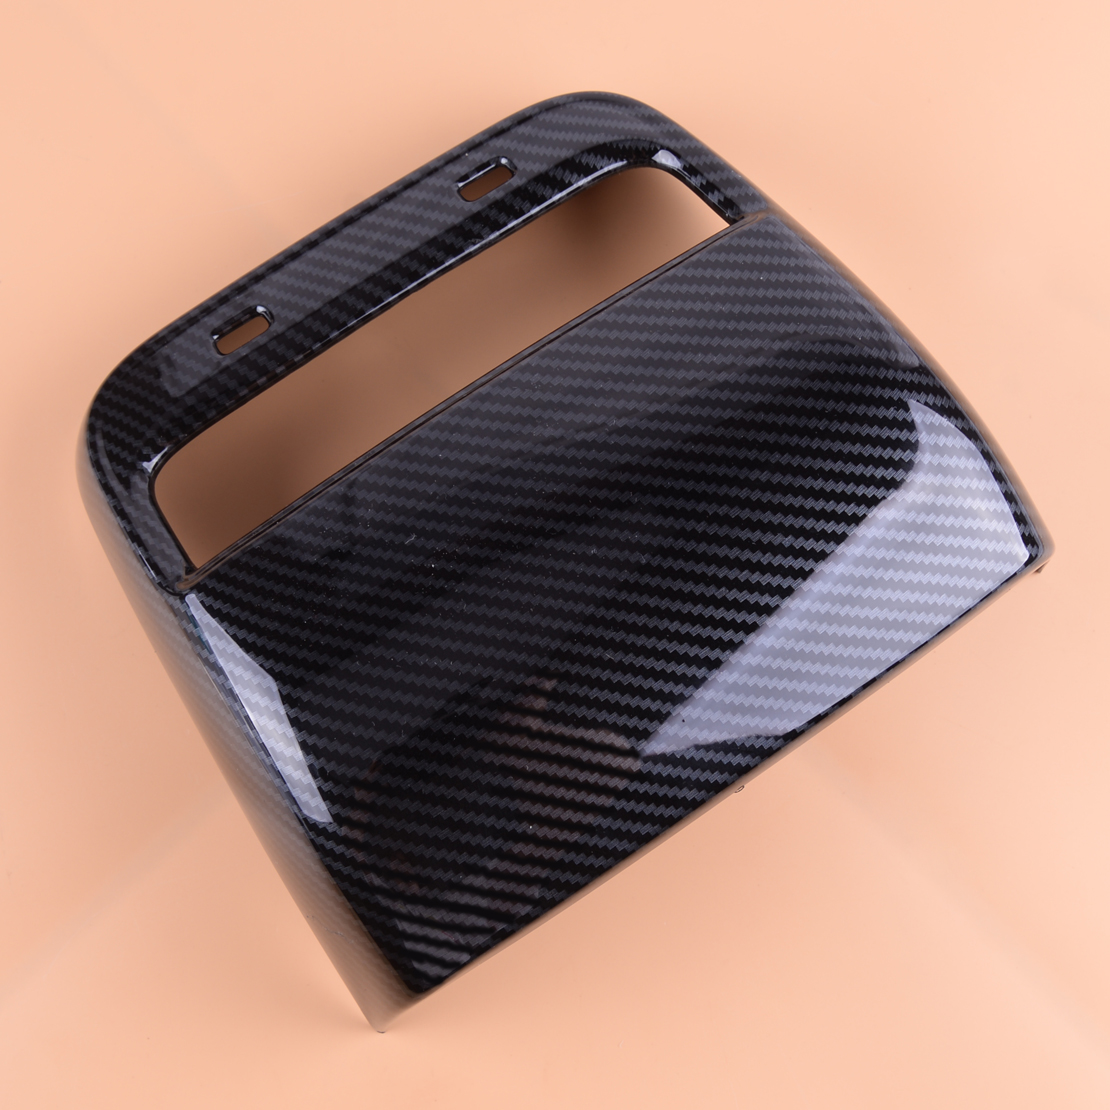 Beler Carbon Fiber Texture Rear Inner Air Vent Outlet Cover Trim 20.7x 18.8cm ABS Fit For Tesla Model 3 2018 2019